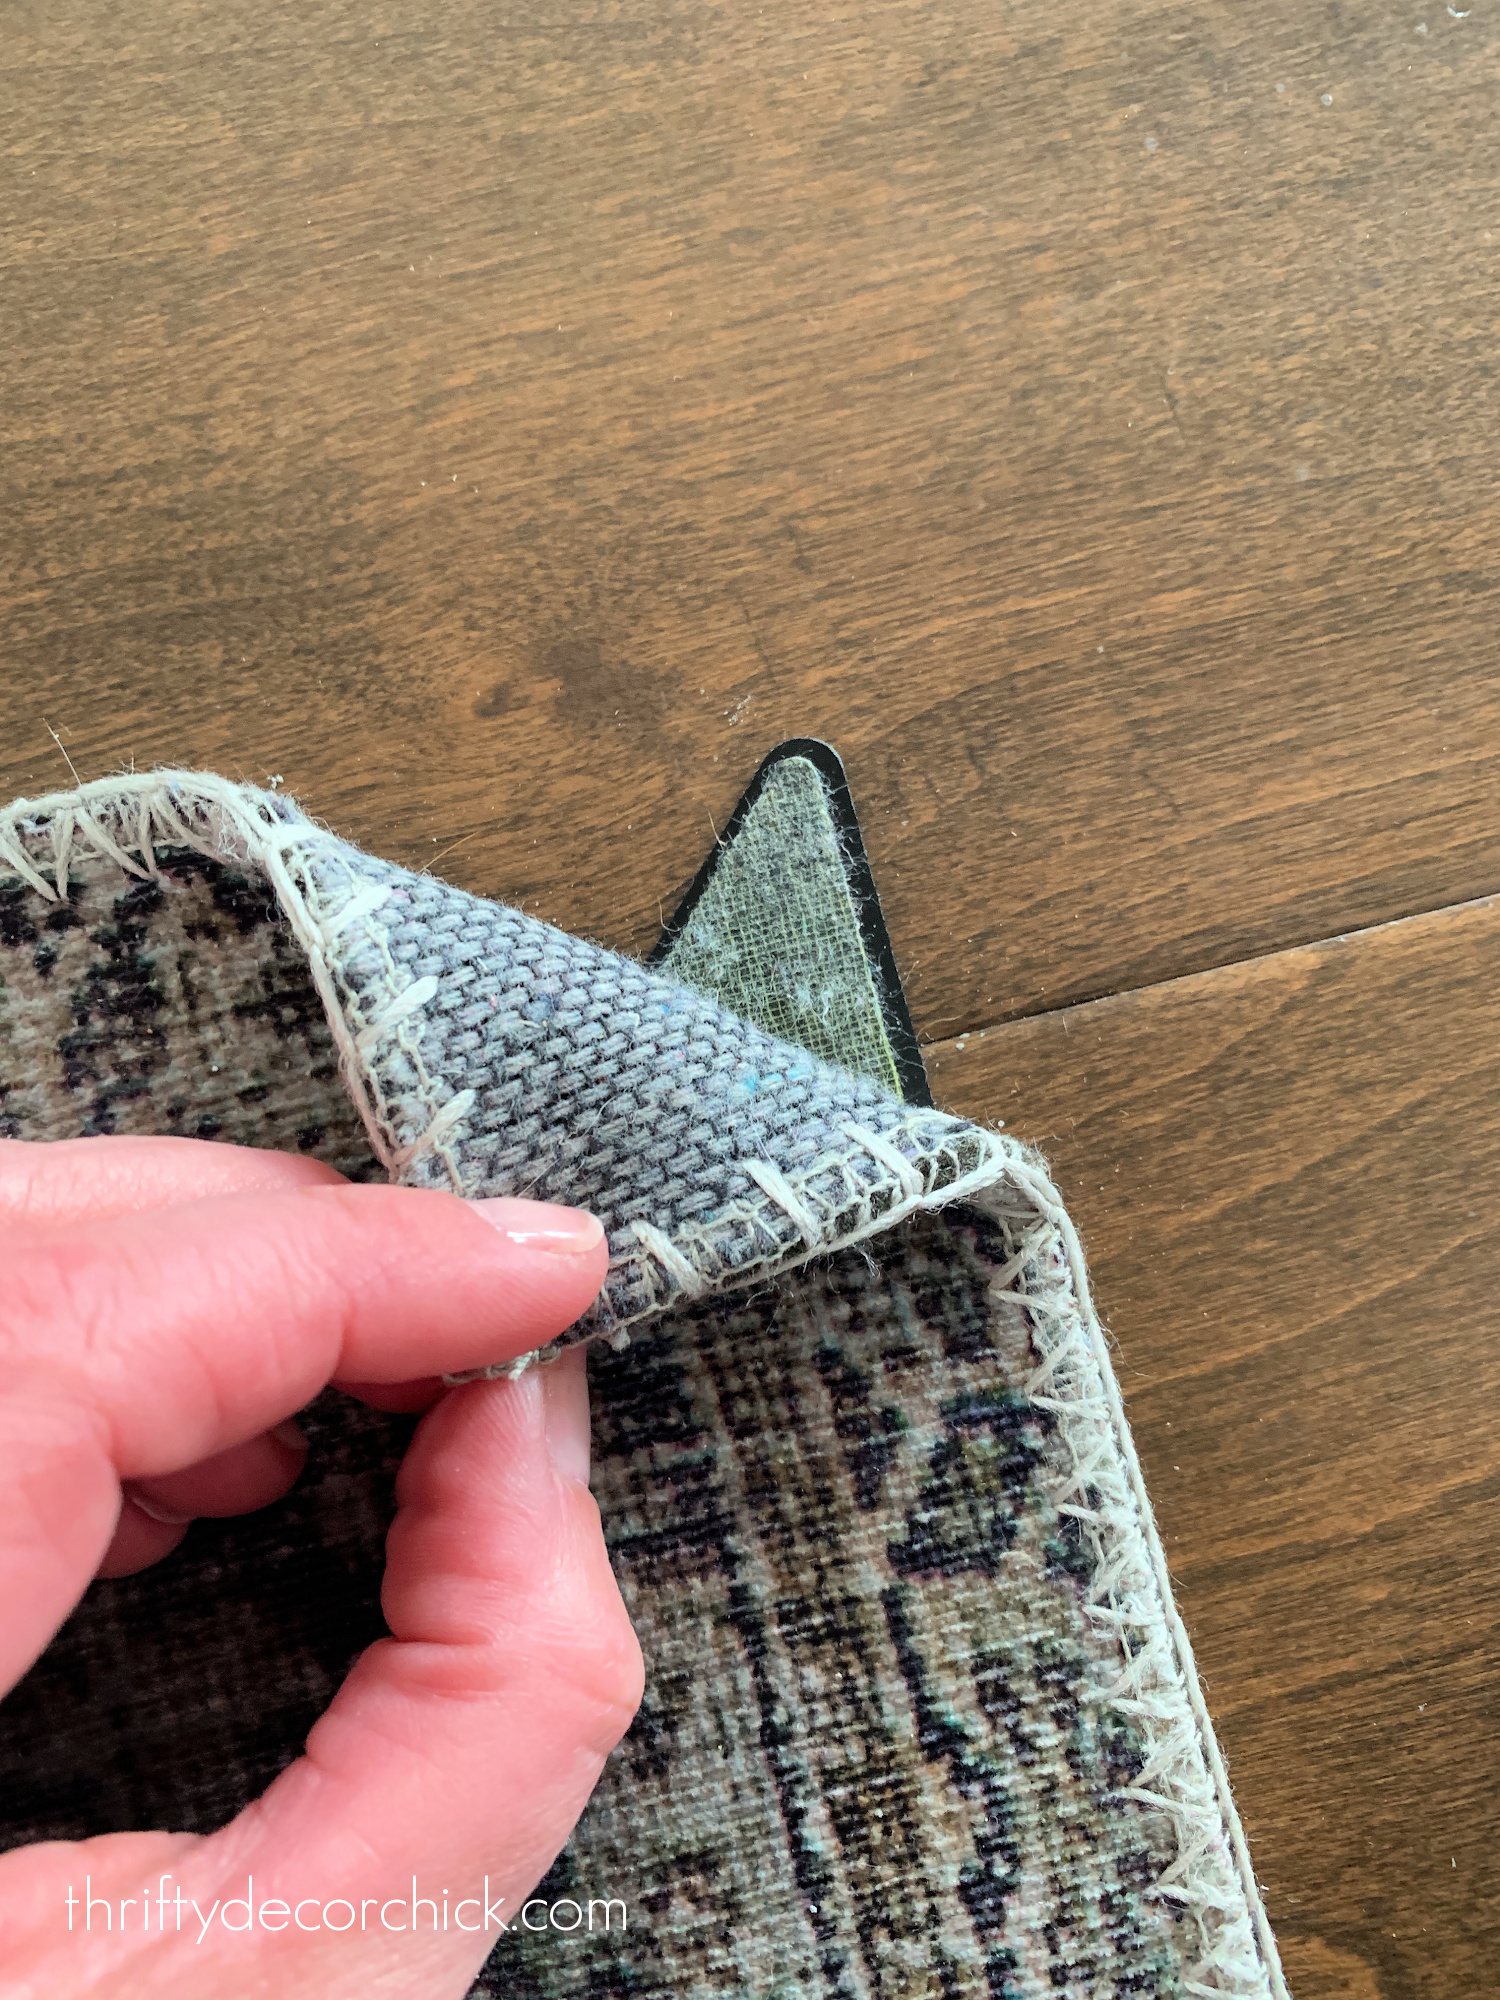 rug grippers for hard floors